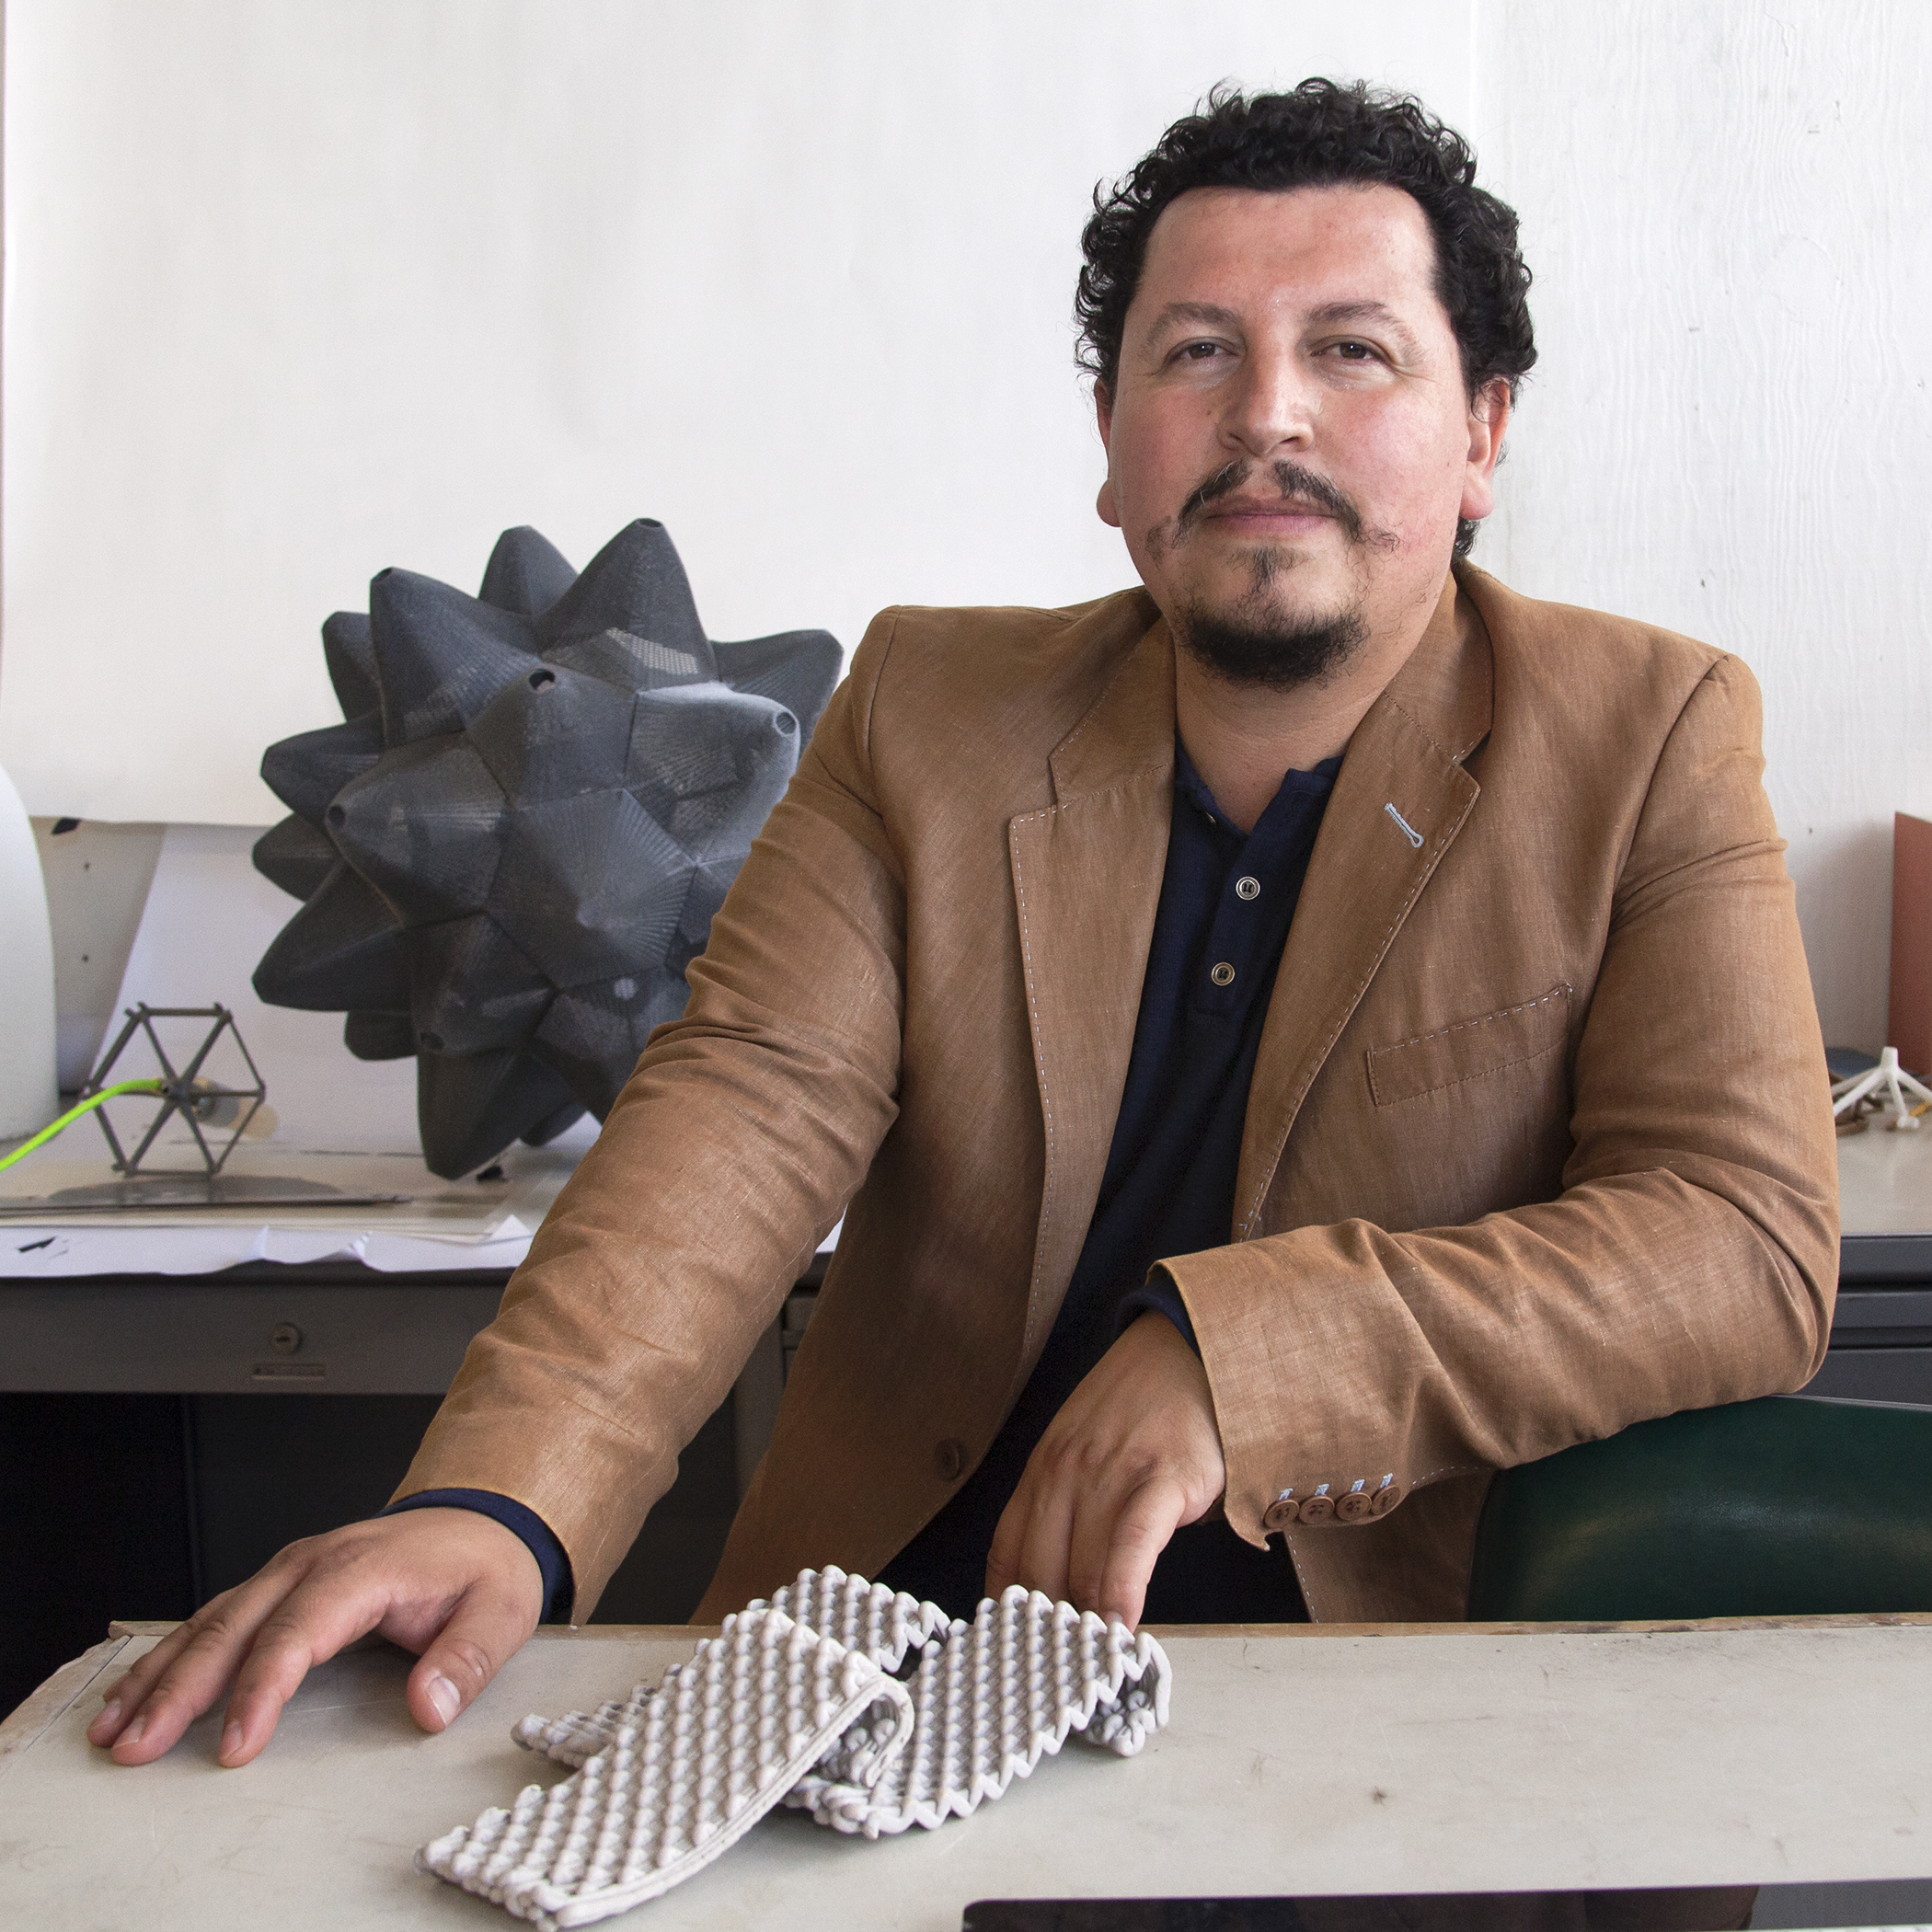 Ron Rael - UC Berkeley   UC Berkeley professor and business man, Ron is the current CEO of  Emerging Objects  and is on a mission to 3D print in a BIG way for home and living spaces. 3D Printing with ceramics, plastics, recycled tires and more, he has a vision of how 3D printers will impact architecture and is working daily to make that vision our reality. He dreams of riding a motorcycle across Bolivia some day.